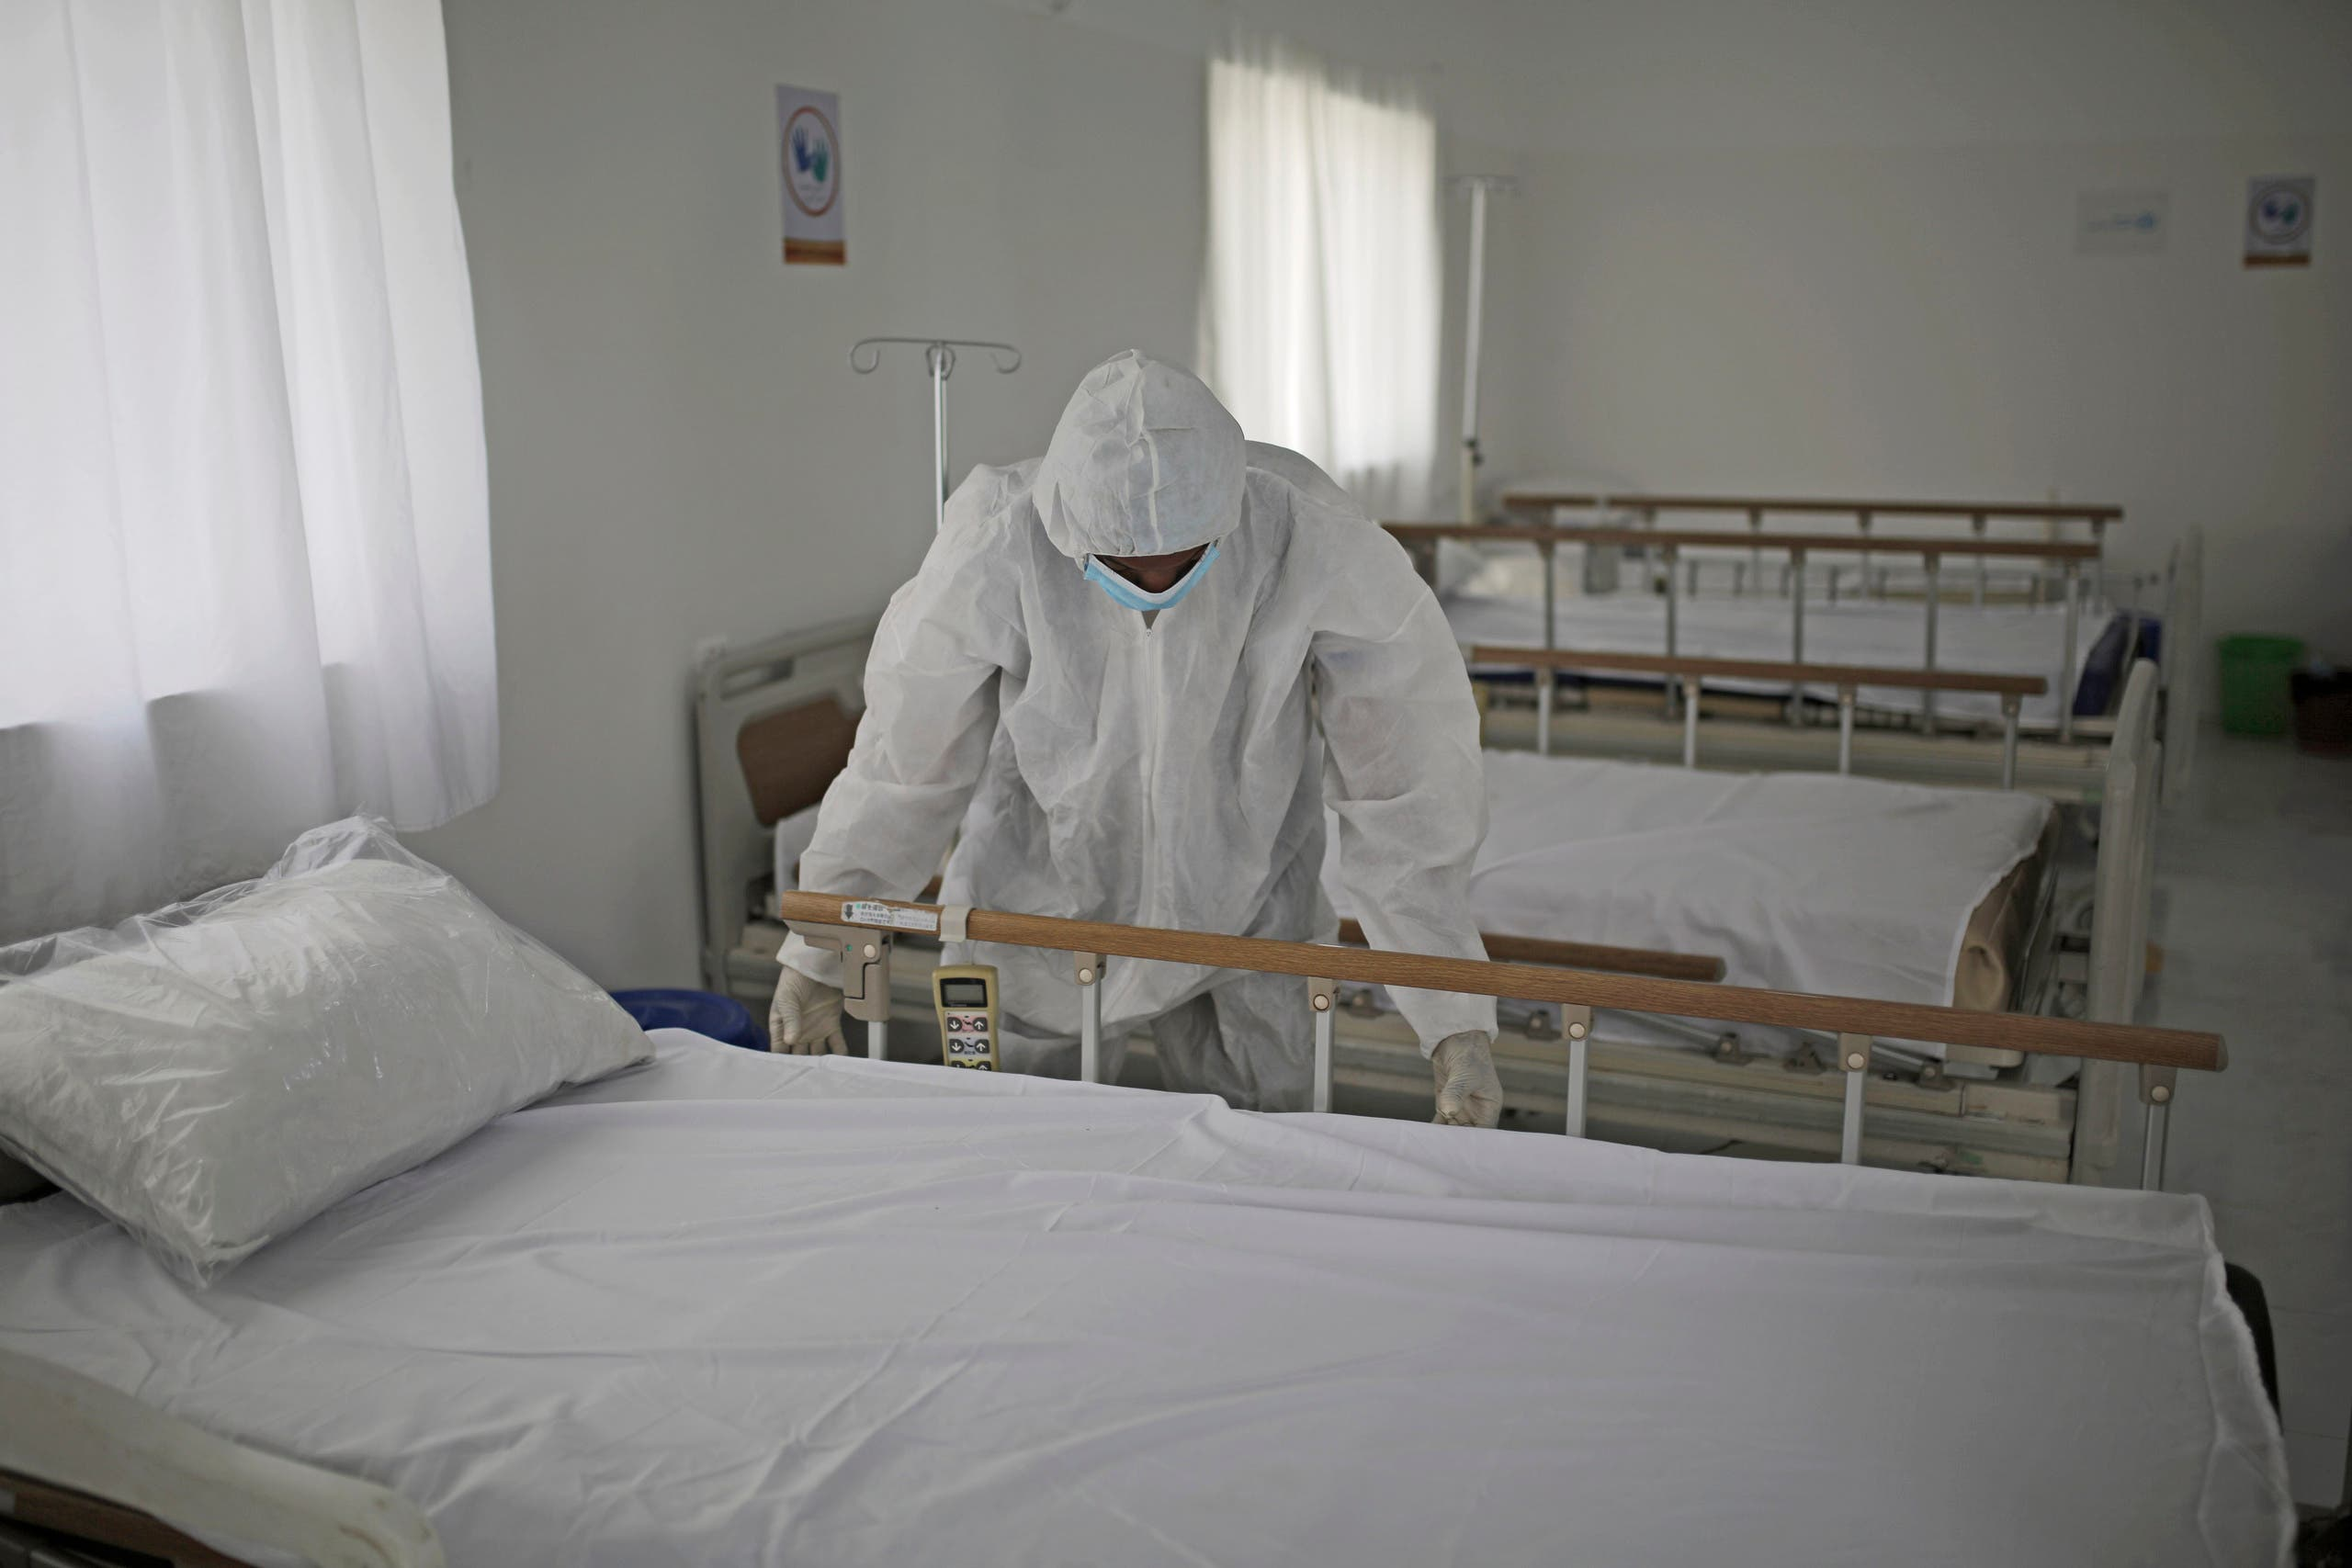 A medical staff member adjusts the sheets on a bed as personnel setup a coronavirus quarantine ward at a hospital in Sanaa, Yemen on March 15, 2020. (AP)